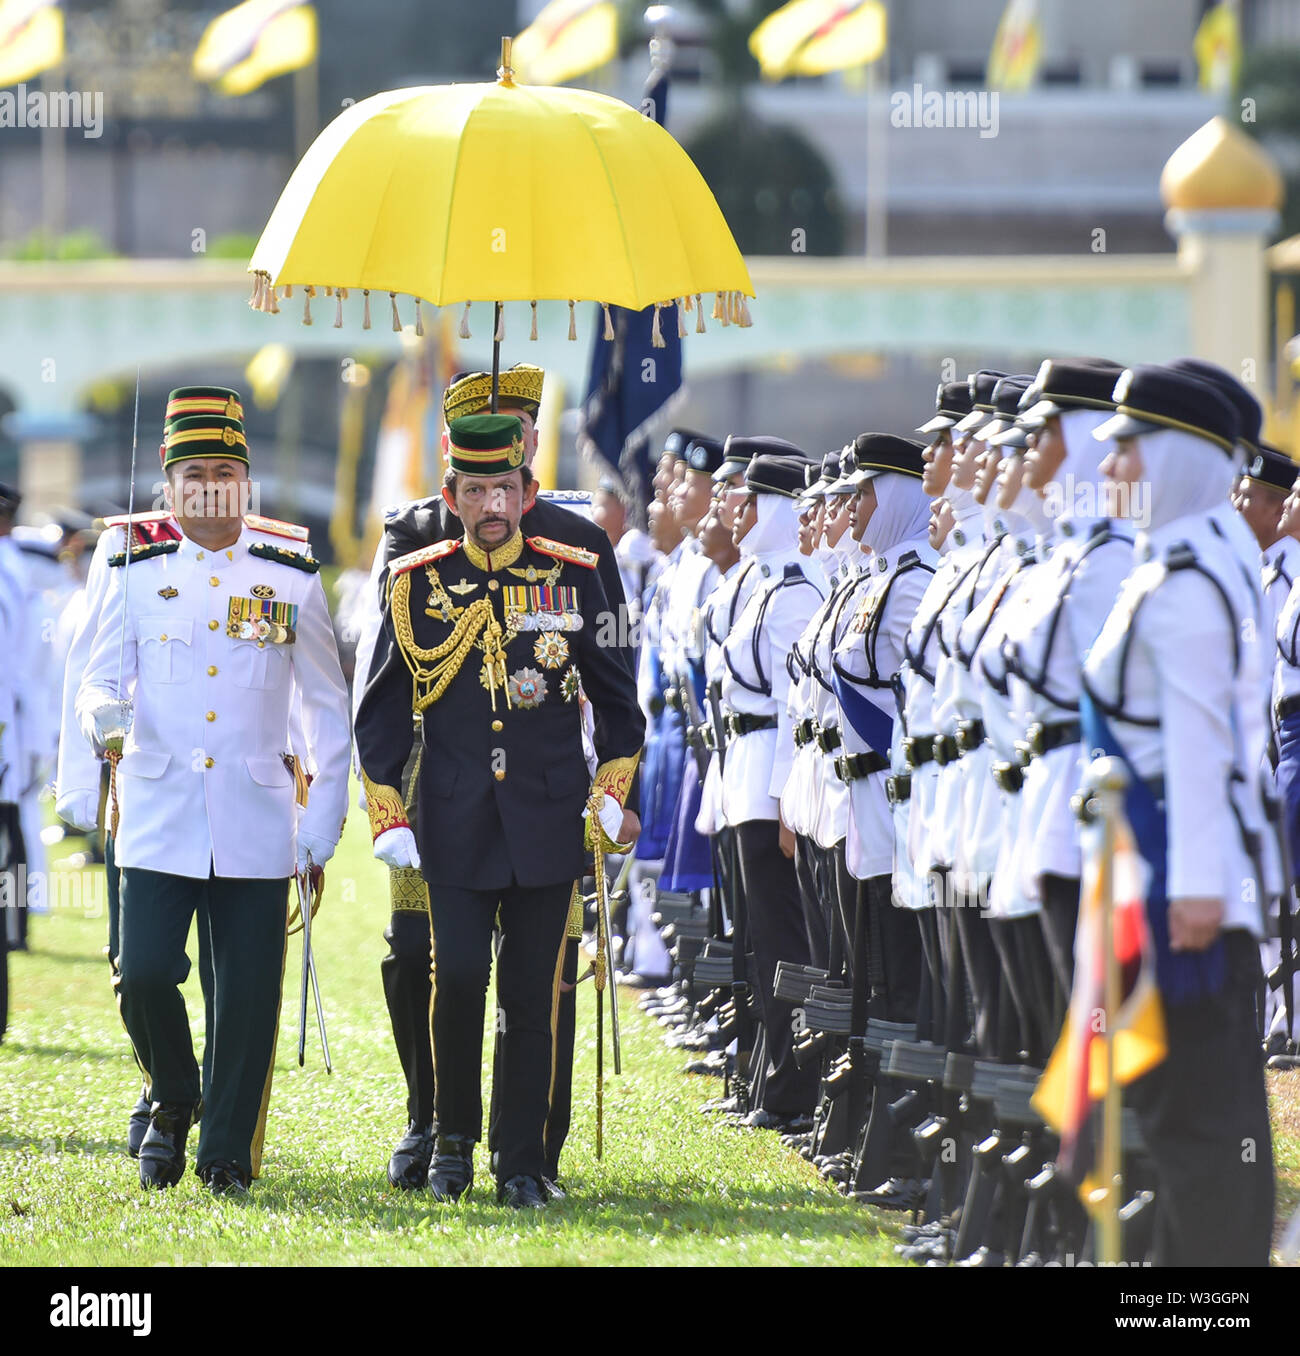 Bandar Seri Begawan, Brunei. 15th July, 2019. Brunei's Sultan Haji Hassanal Bolkiah inspects the guard of honor in Bandar Seri Begawan, Brunei, July 15, 2019. Brunei celebrated the Sultan Haji Hassanal Bolkiah's 73rd birthday with various activities including a ceremonial parade and a grand state banquet on Monday. The Sultan birthday is a national event held annually, which usually lasted about a month. Credit: Jeffrey Wong/Xinhua/Alamy Live News - Stock Image